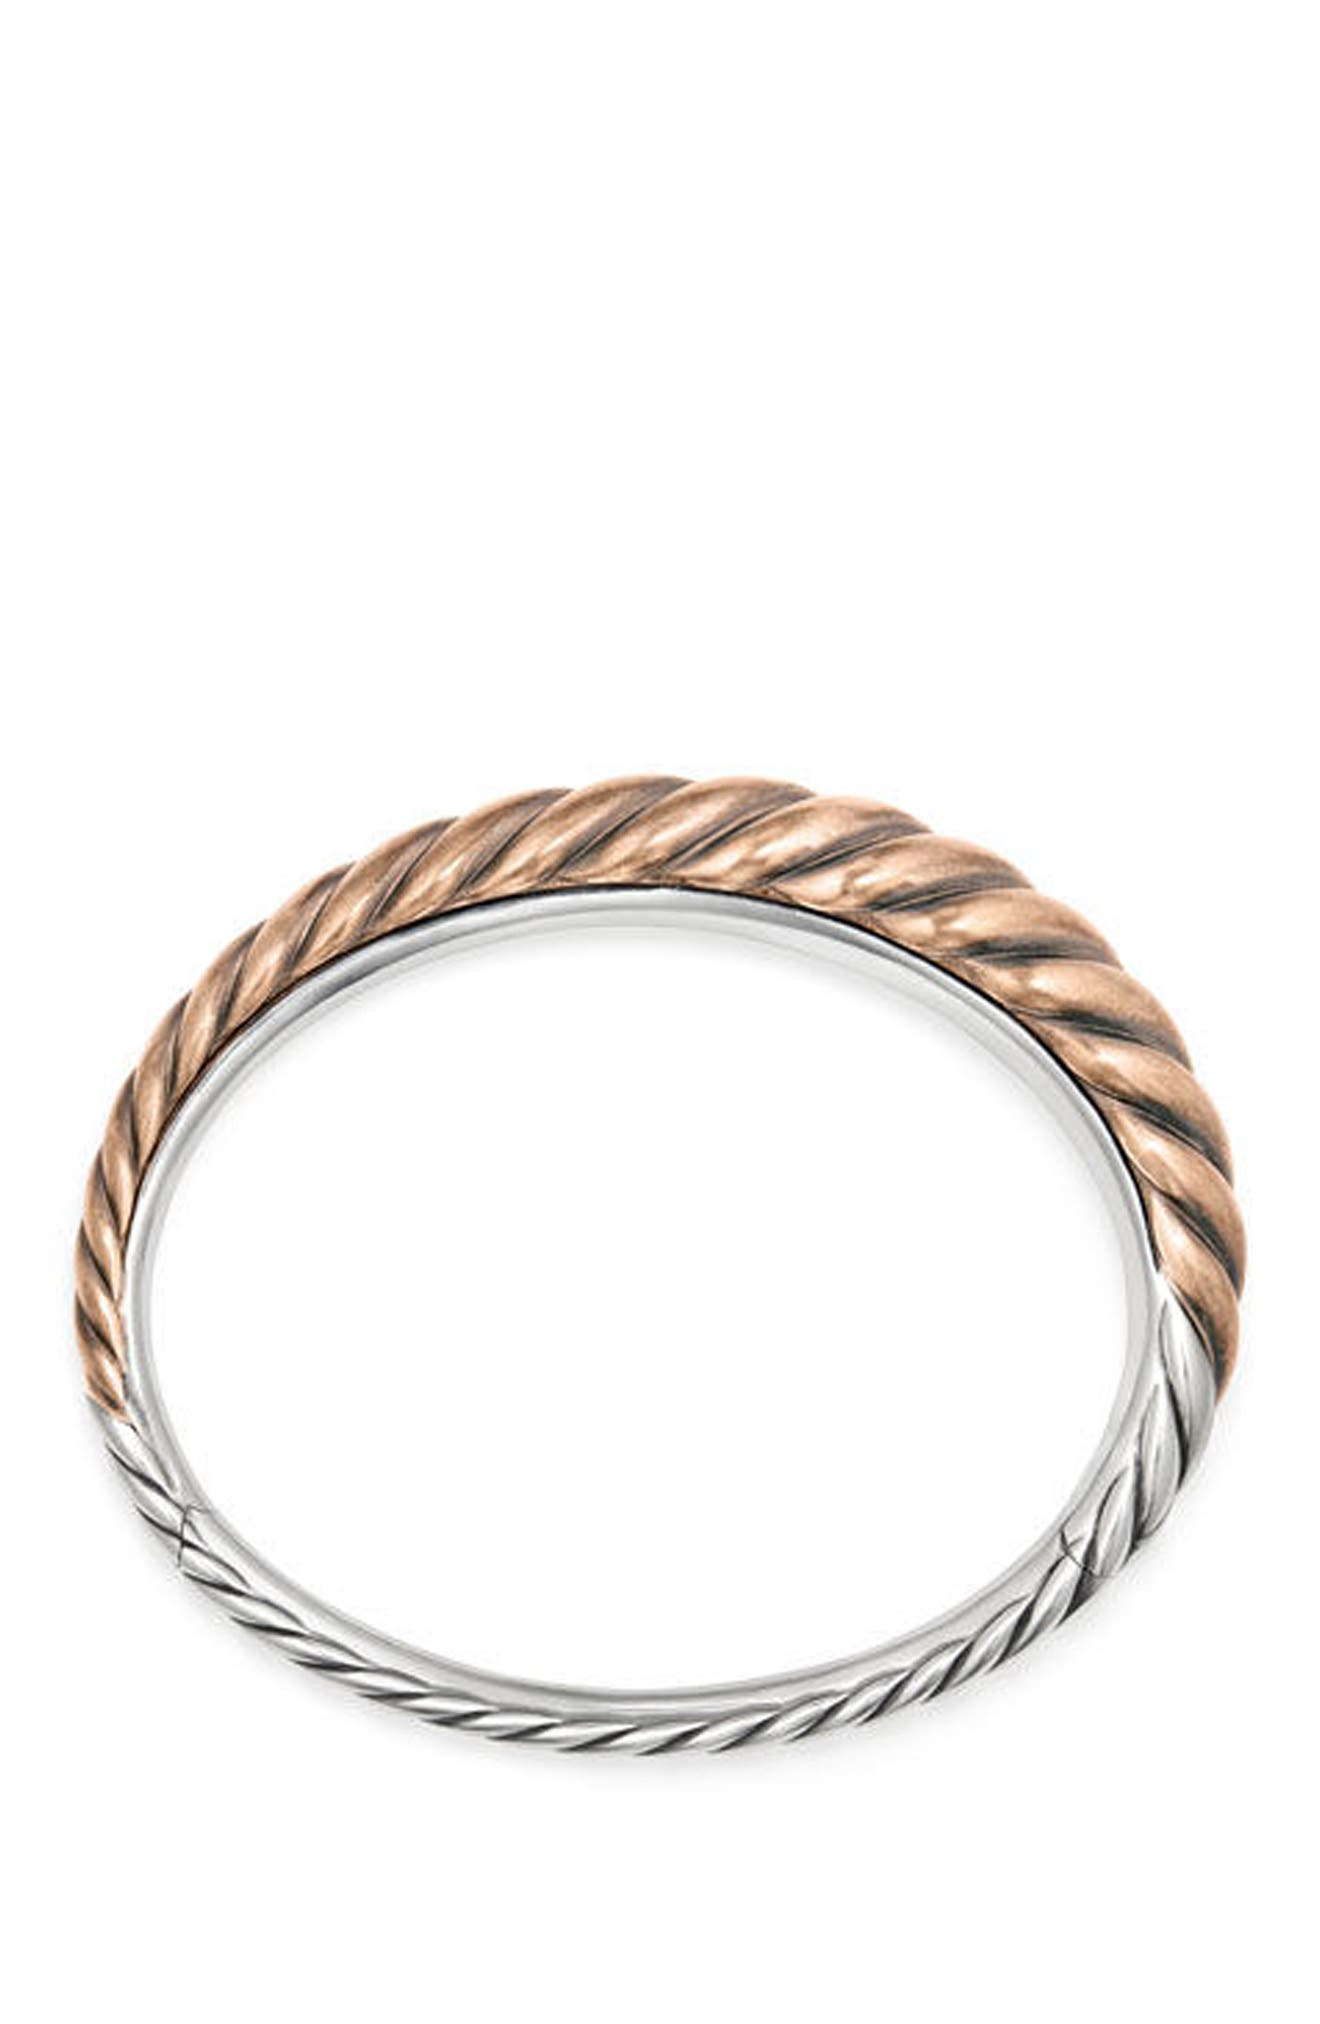 Alternate Image 2  - David Yurman Pure Form Mixed Metal Cable Bracelet with Bronze and Silver, 9.5mm